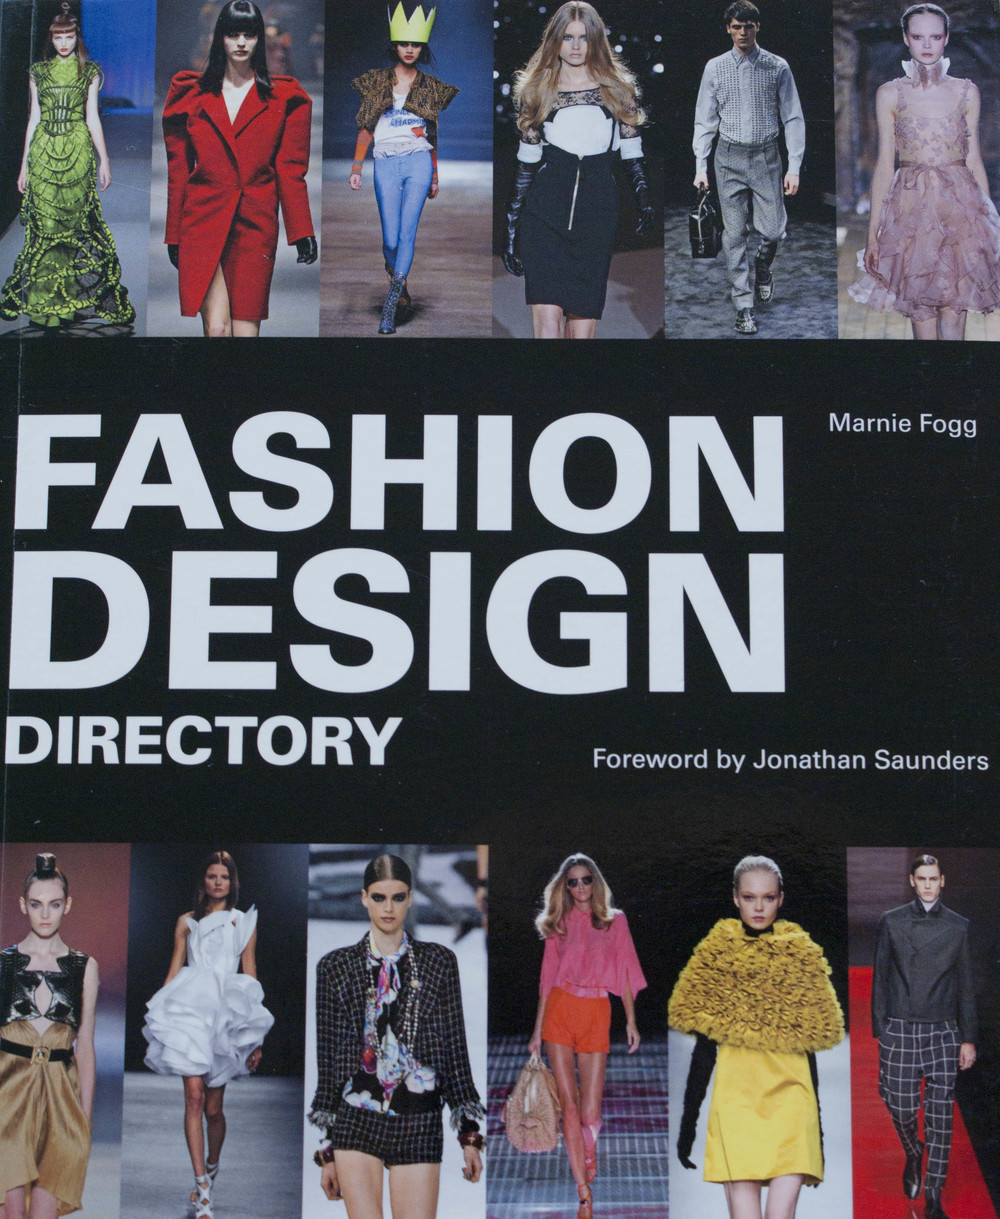 Fashion Design Directory.jpg